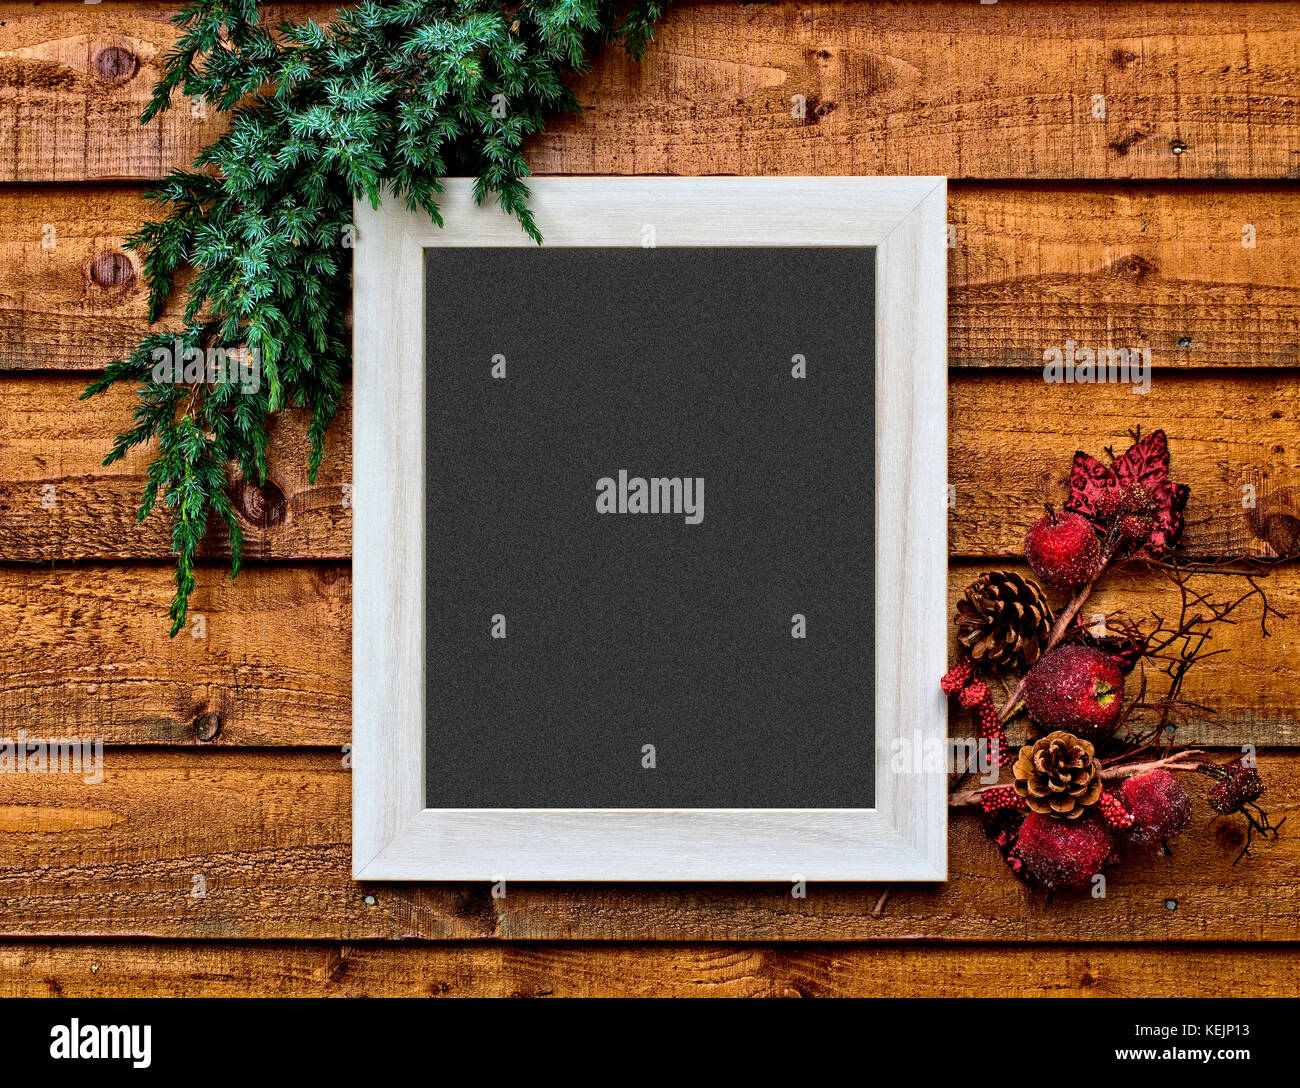 Christmas card photo, with space in the framed blackboard to write a personalised message - Stock Image